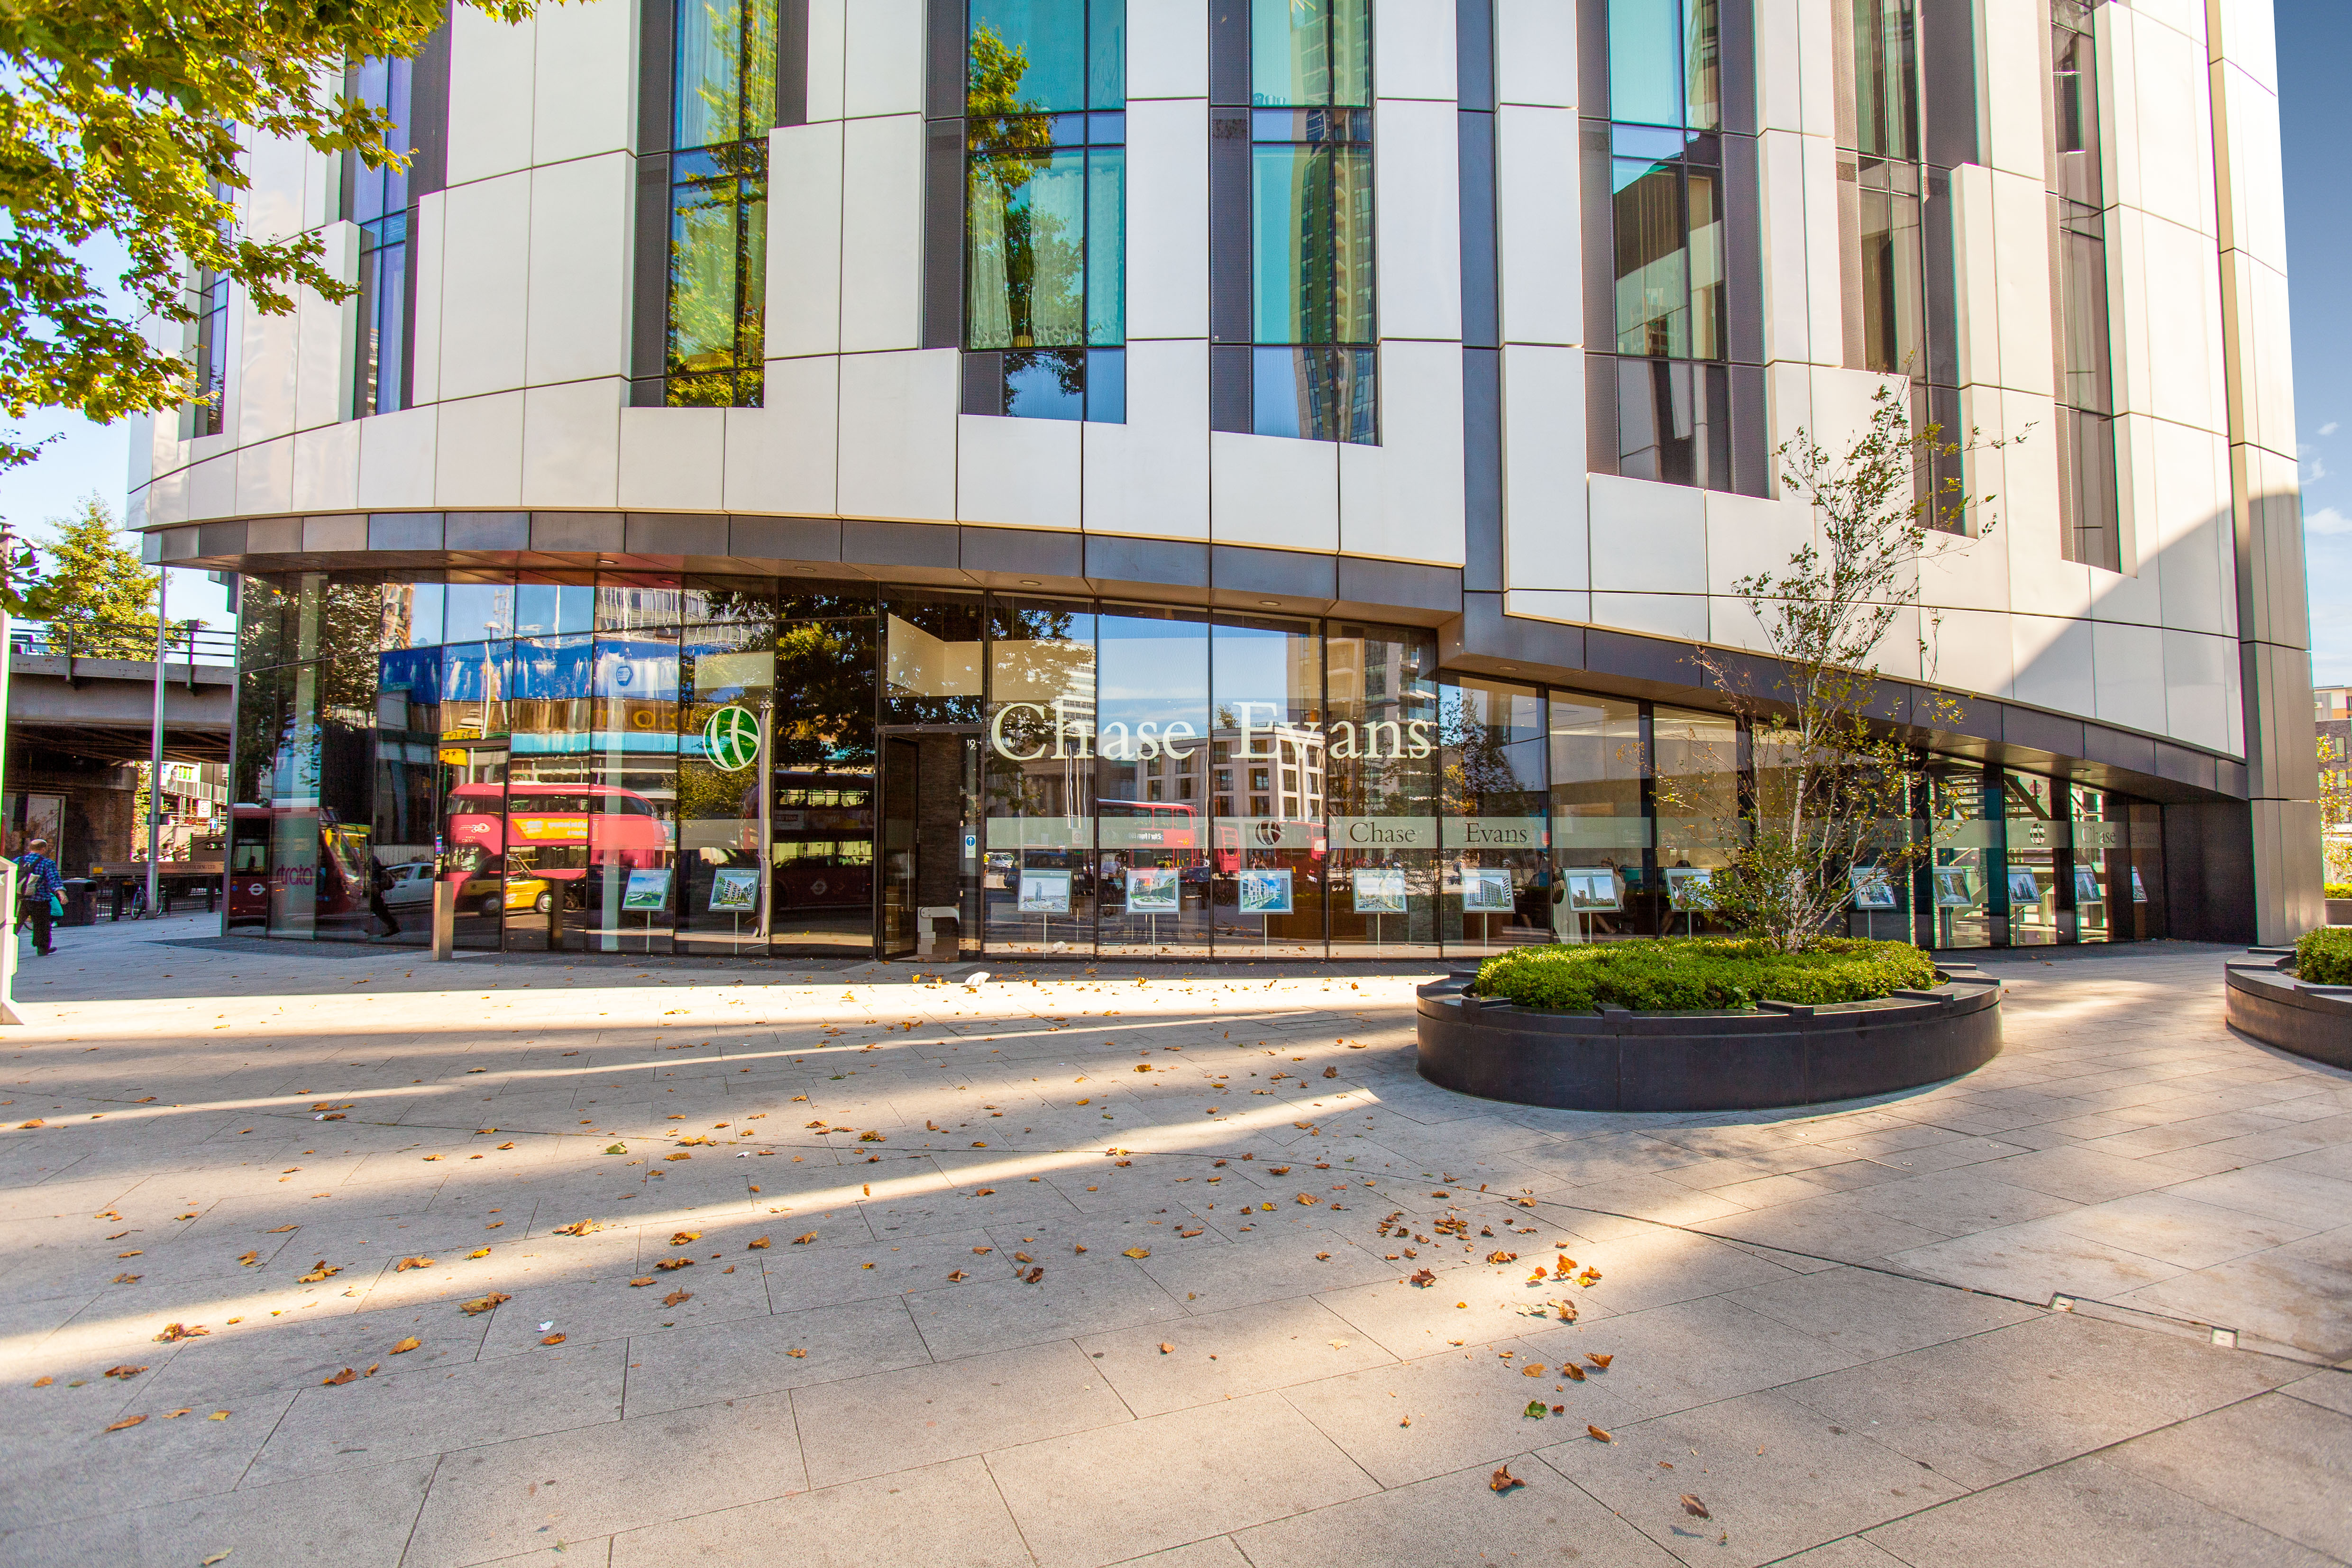 Contact Chase Evans Estate Agents in Docklands, Canary Wharf